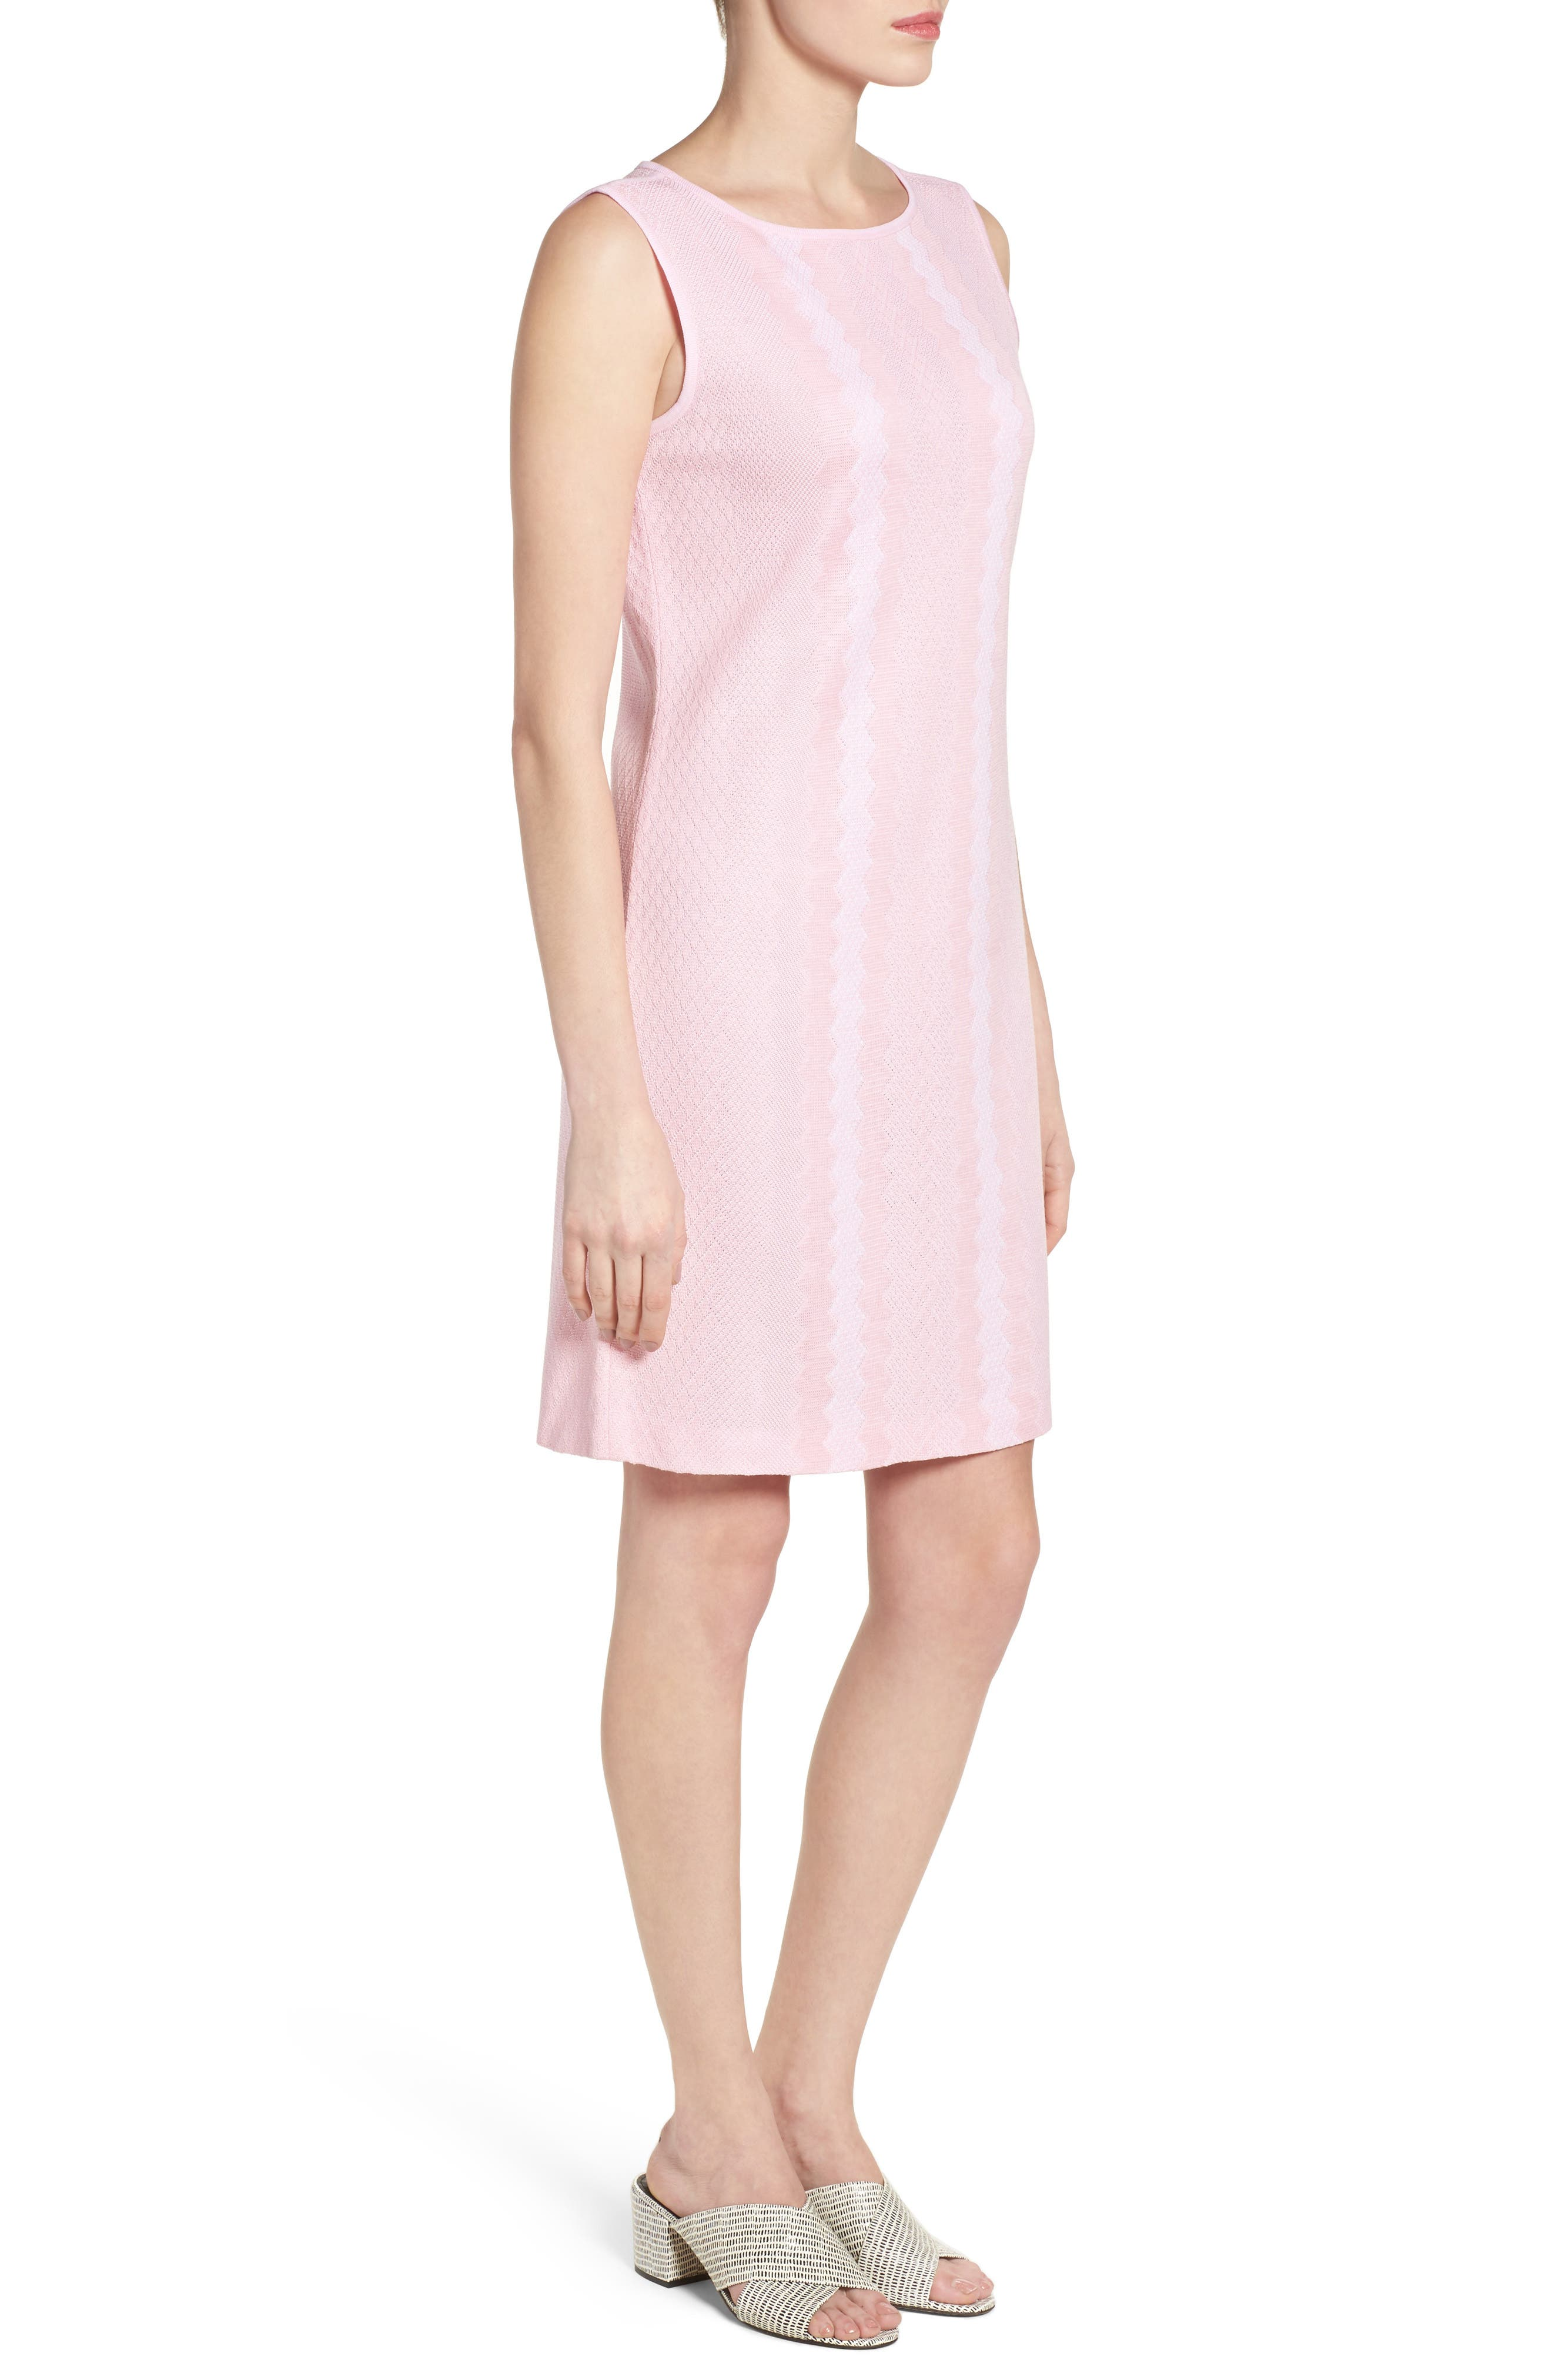 Sleeveless Knit Sheath Dress,                             Alternate thumbnail 3, color,                             Perfect Pink/ White